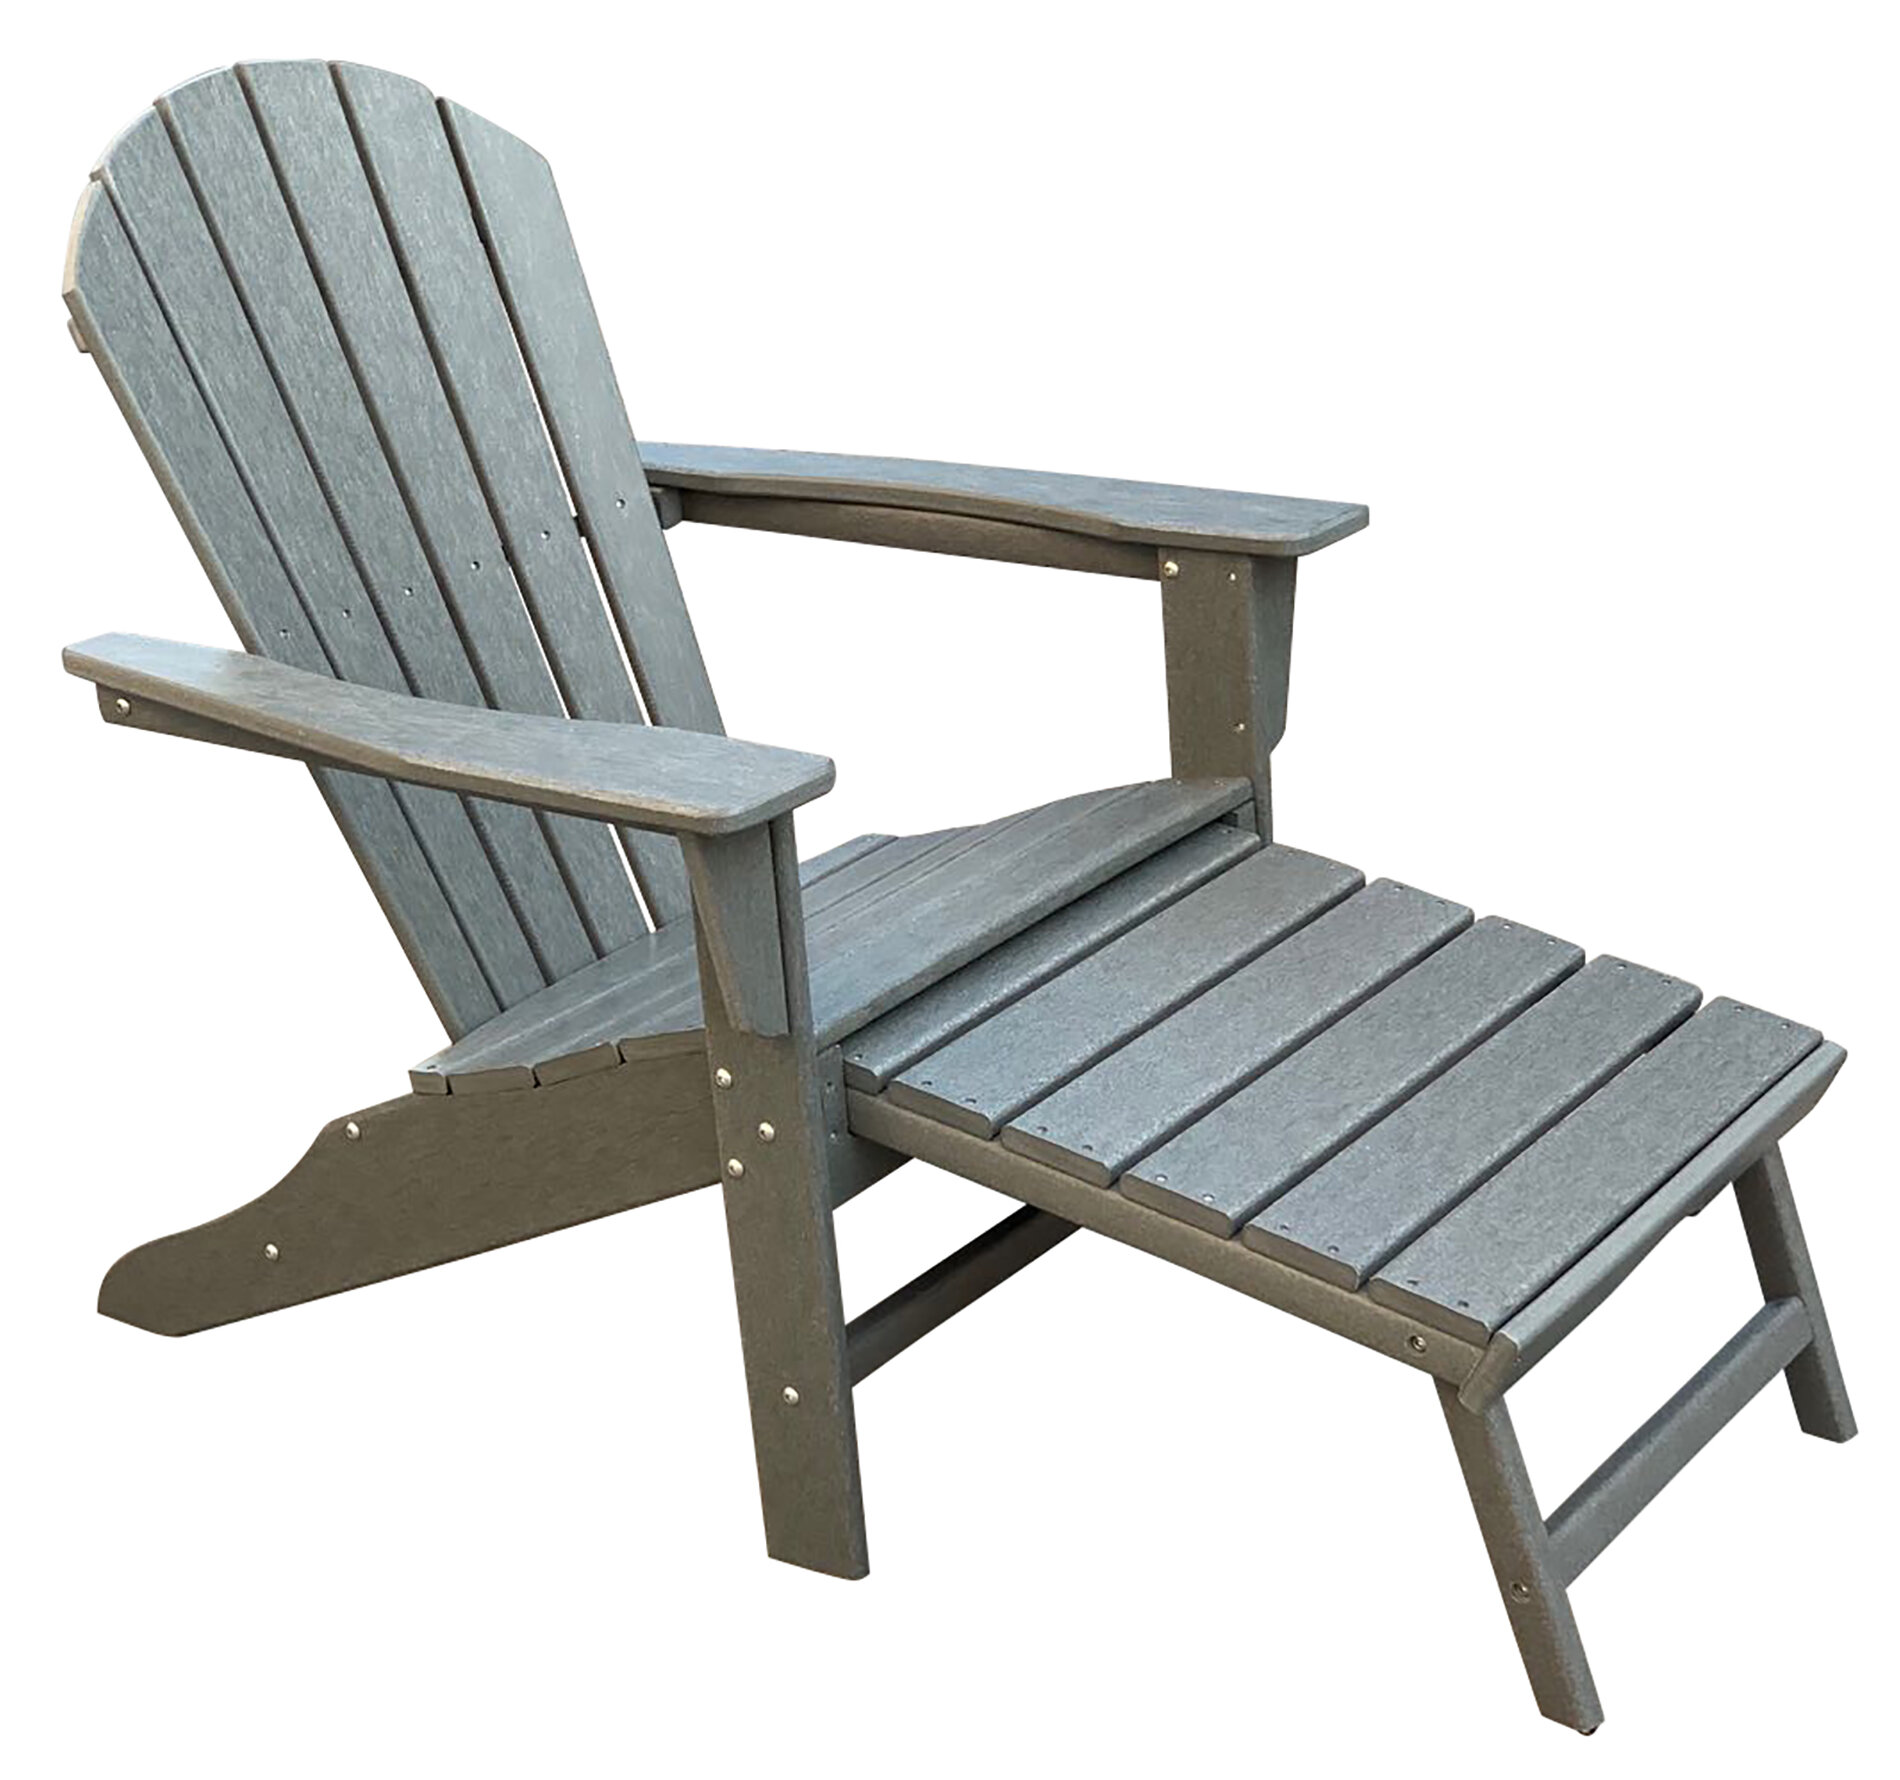 Incredible Corinne Patio Plastic Adirondack Chair With Ottoman Machost Co Dining Chair Design Ideas Machostcouk